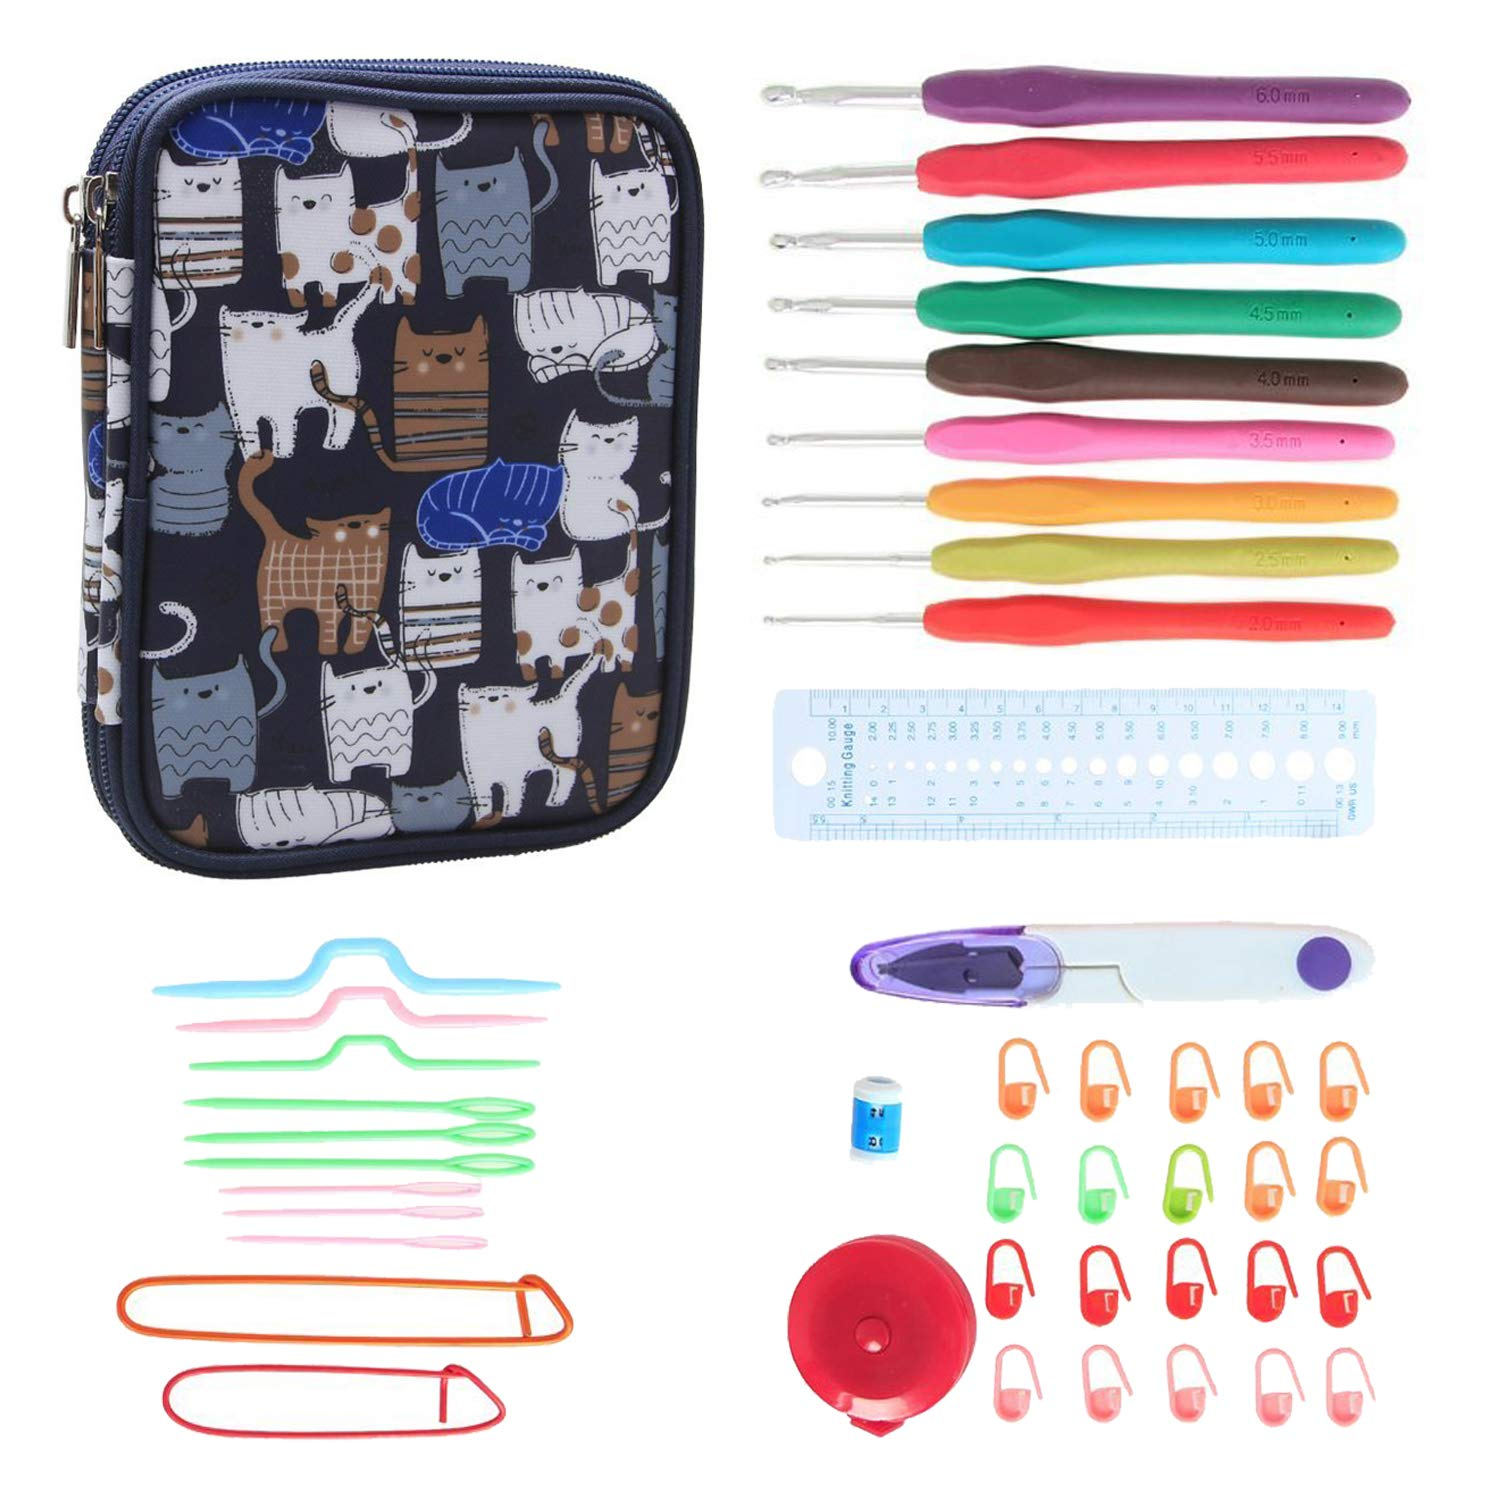 Teamoy Ergonomic Crochet Hooks Set, Knitting Needle Kit, Zipper Organizer Case With 9pcs 2mm to 6mm Soft Grip Crochets and Complete Accessories, Small Volume and Convenient to Carry, Flowers Blue Damai